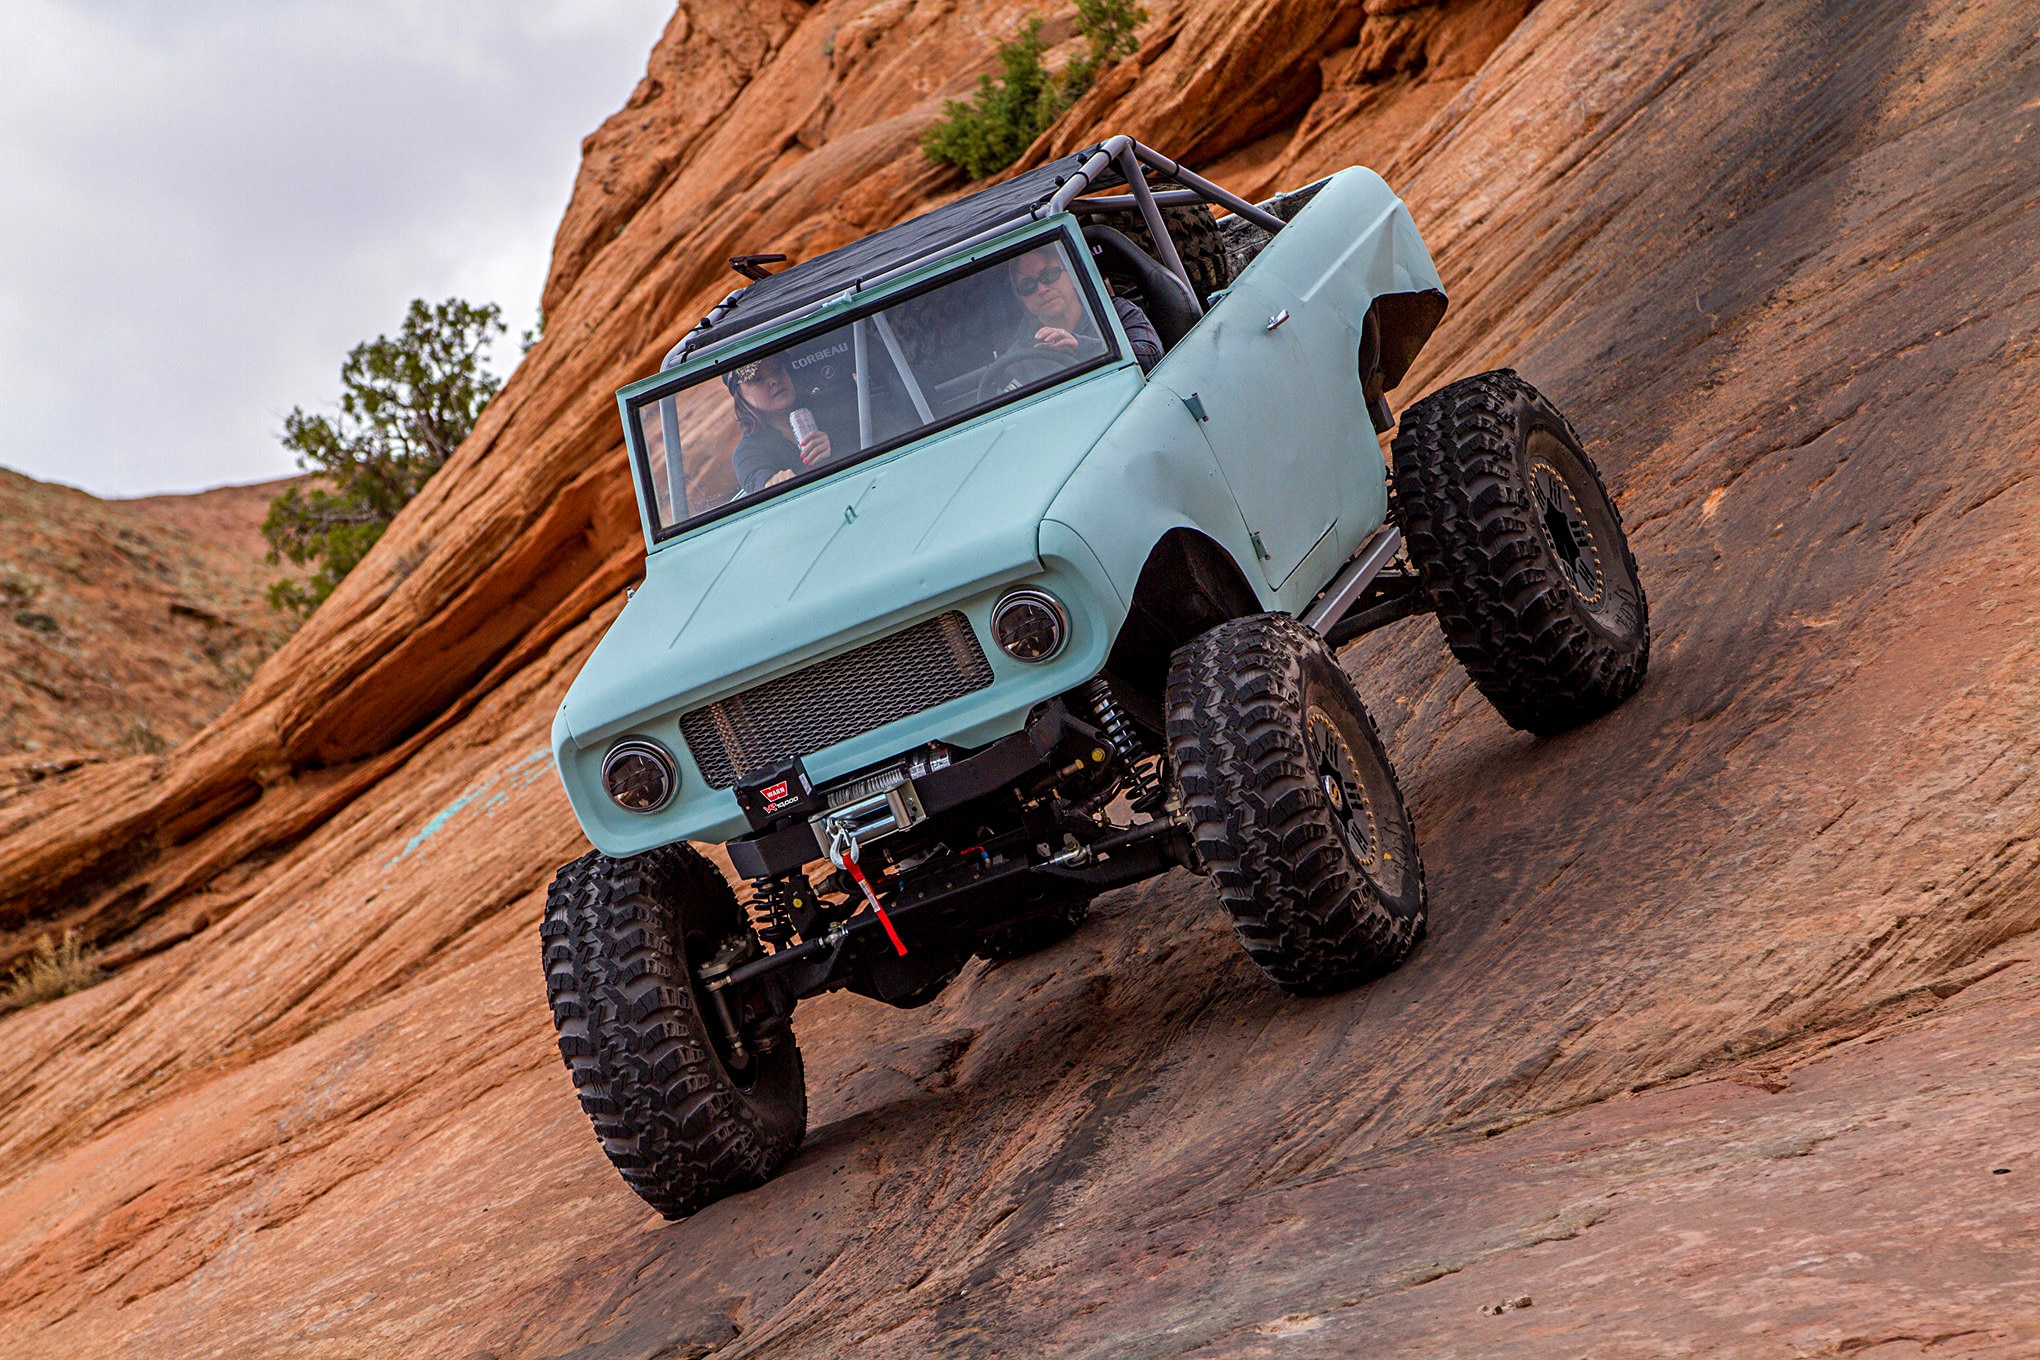 a 1962 scout 80 with some super-secret off-road modifications